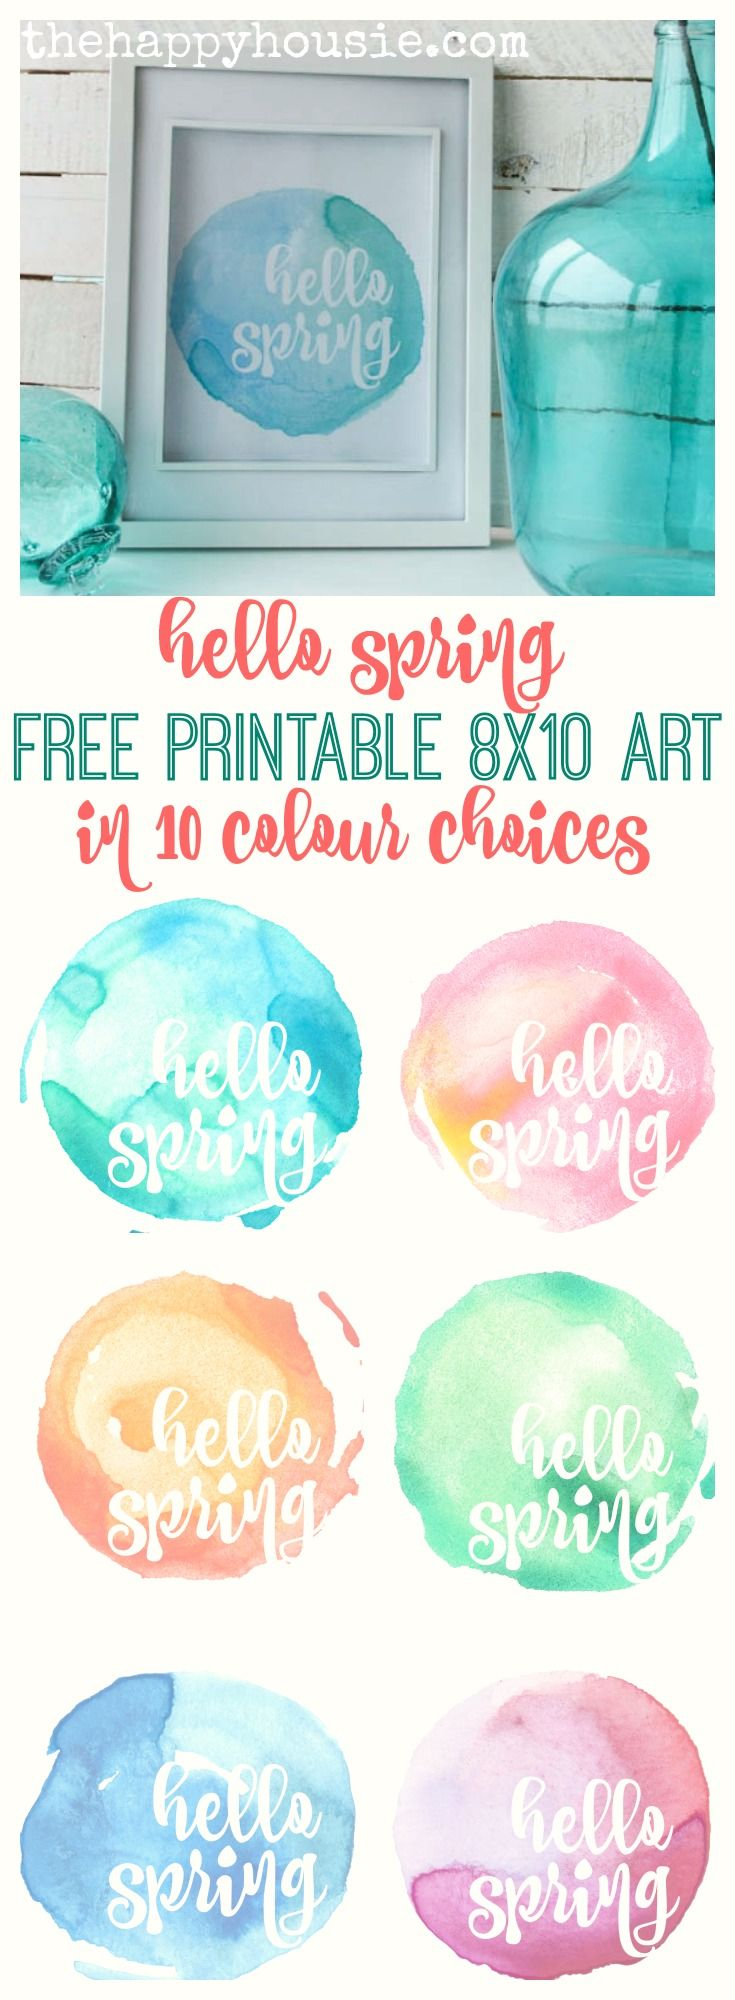 819 best Pretty Printables images on Pinterest